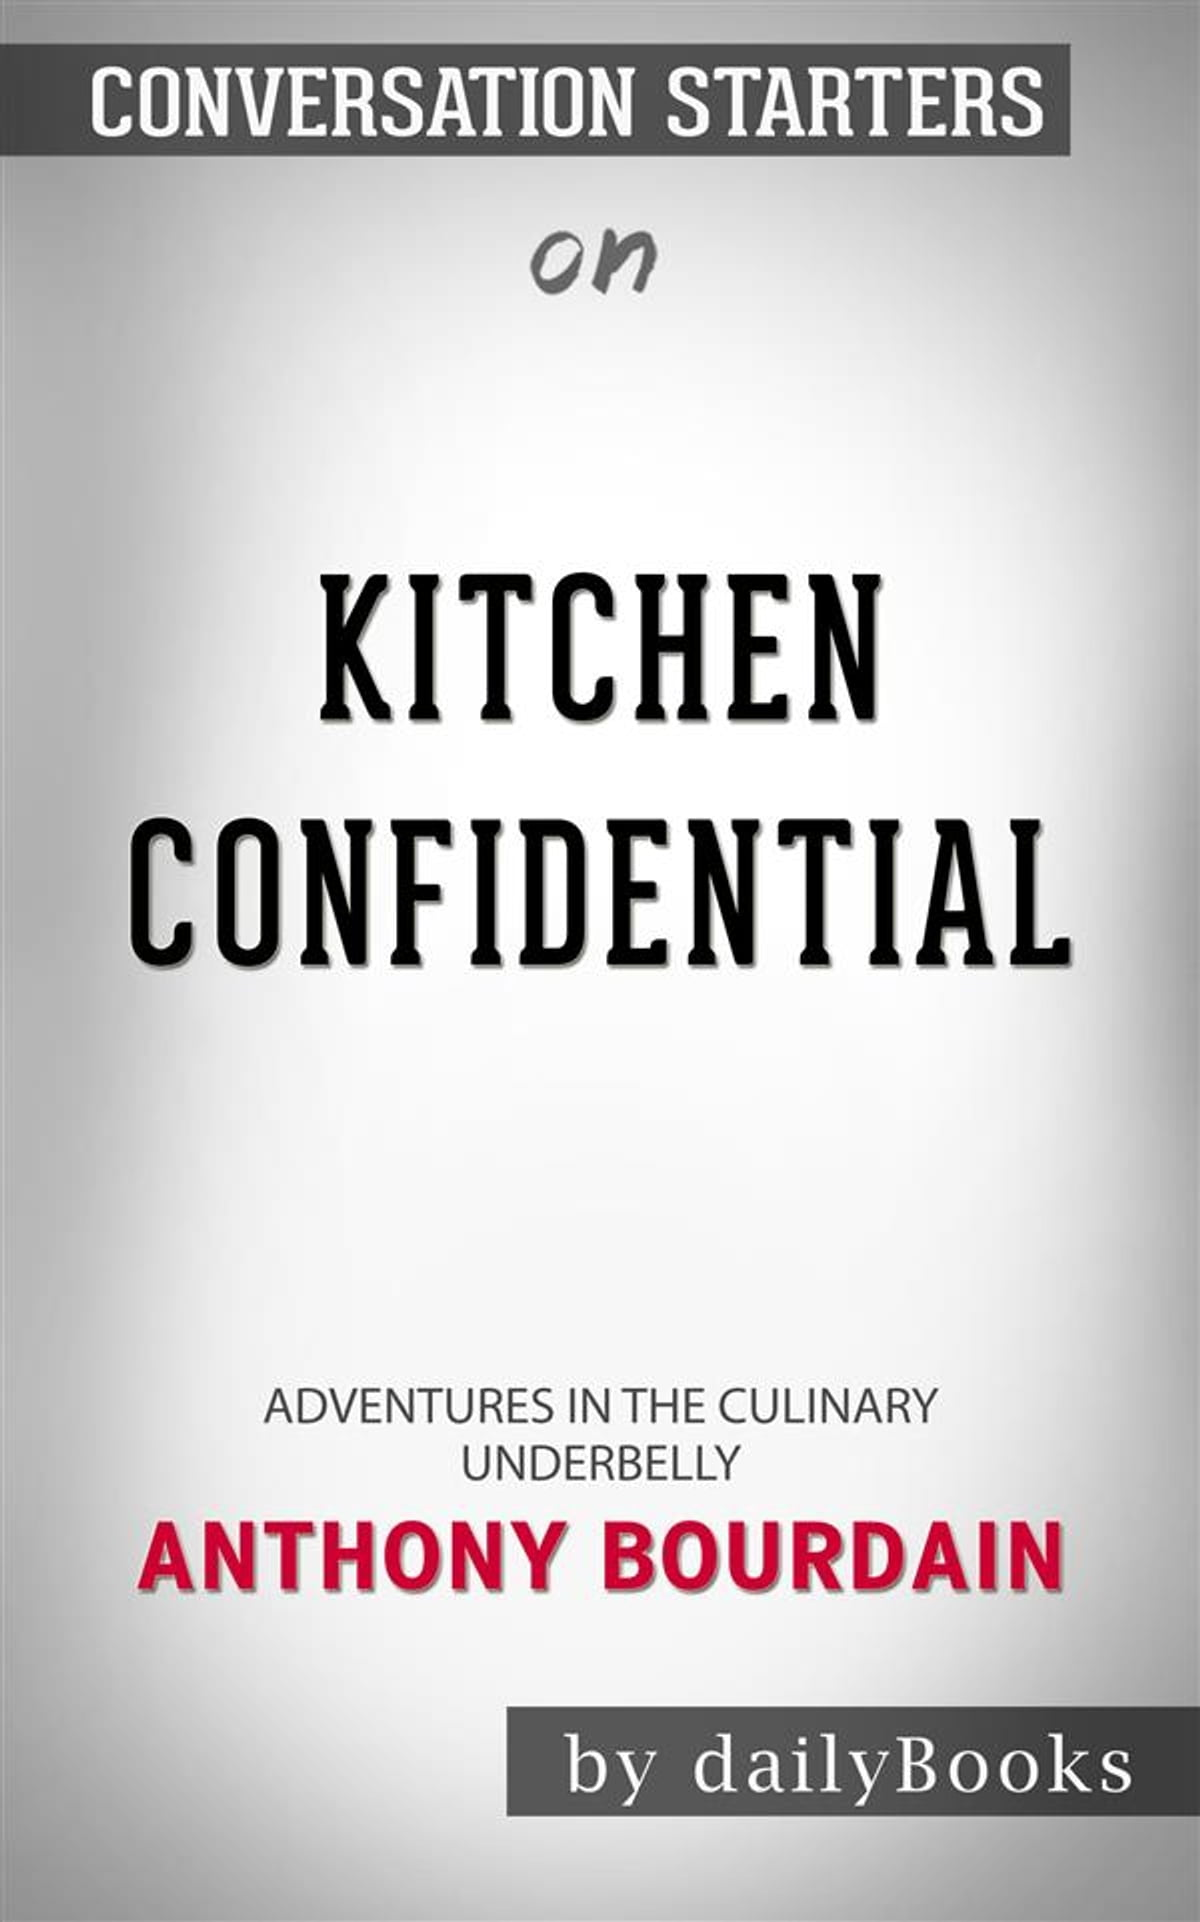 anthony bourdain kitchen confidential the cheapest cabinets adventures in culinary